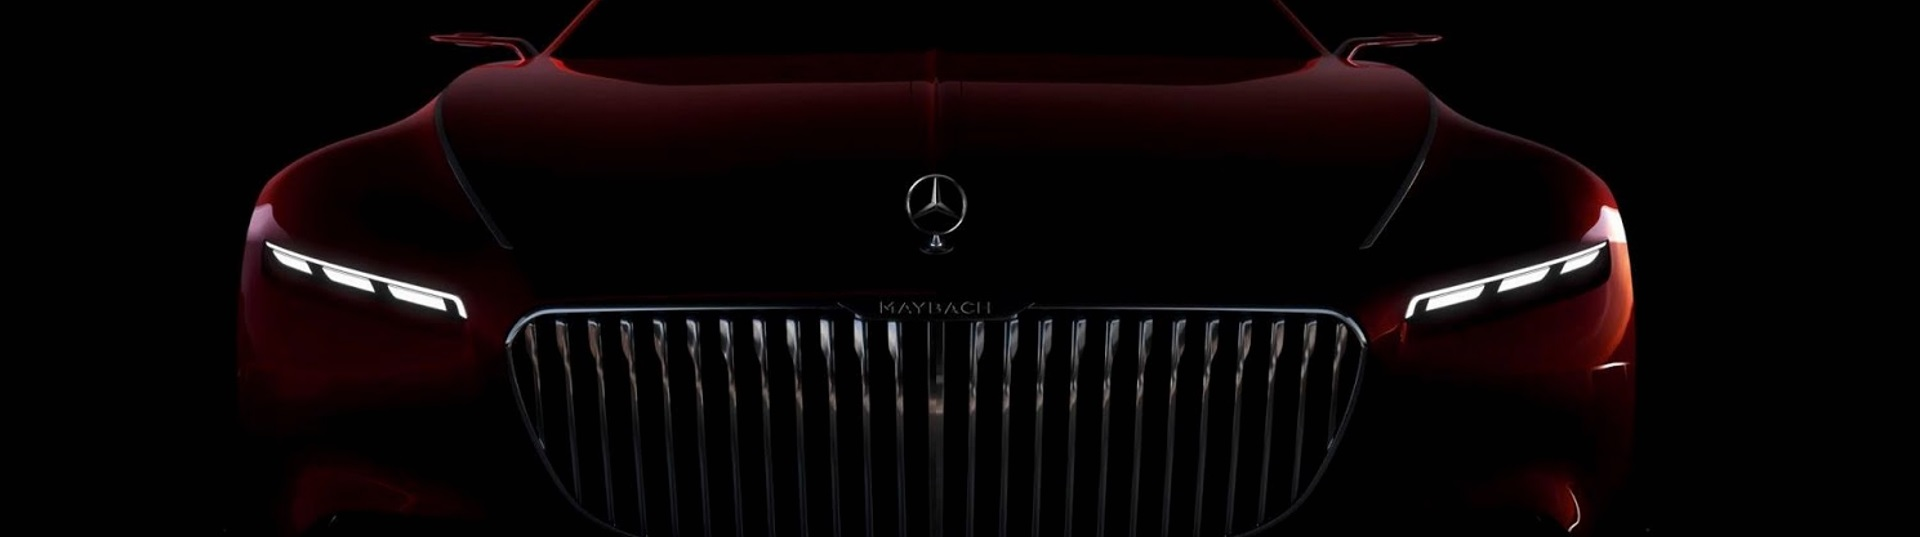 mercedes maybach_1920